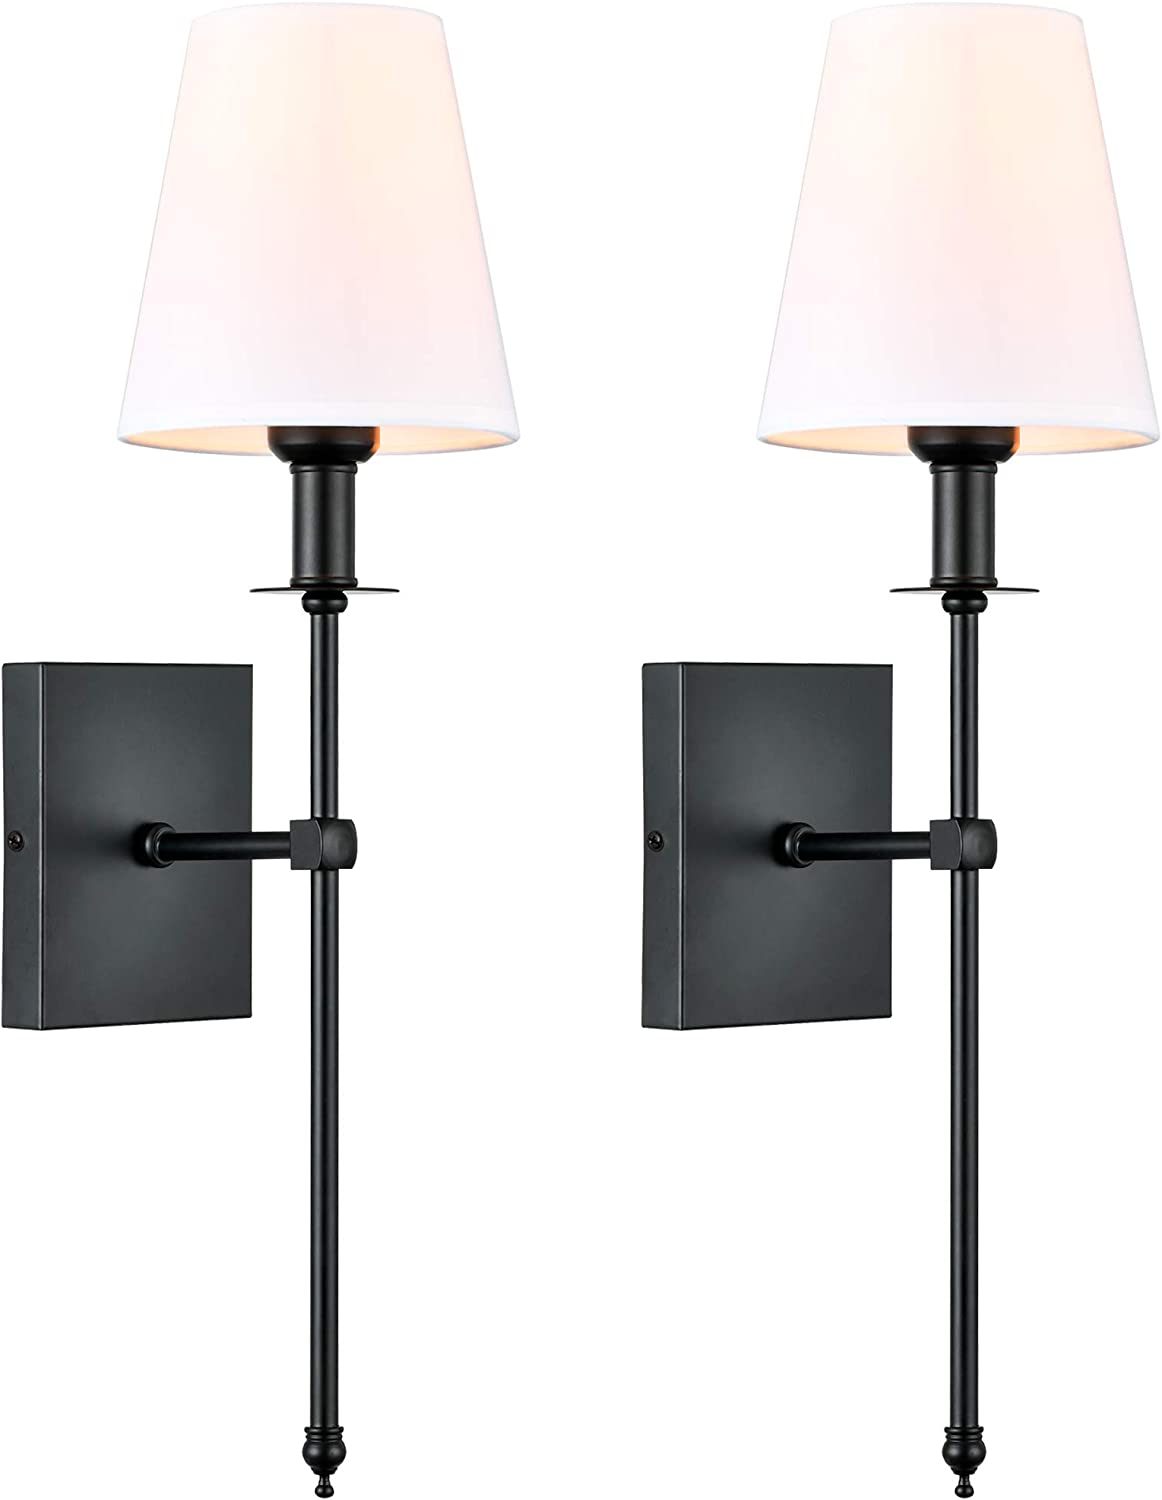 Passica Decor Modern Matt Black Wall Sconce Set of Two, with Vertical Rod and White Fabric Flared Shade,Versatile Used in Bathroom Vanity Stairway Fireplace Living Room Bedroom Nightstands